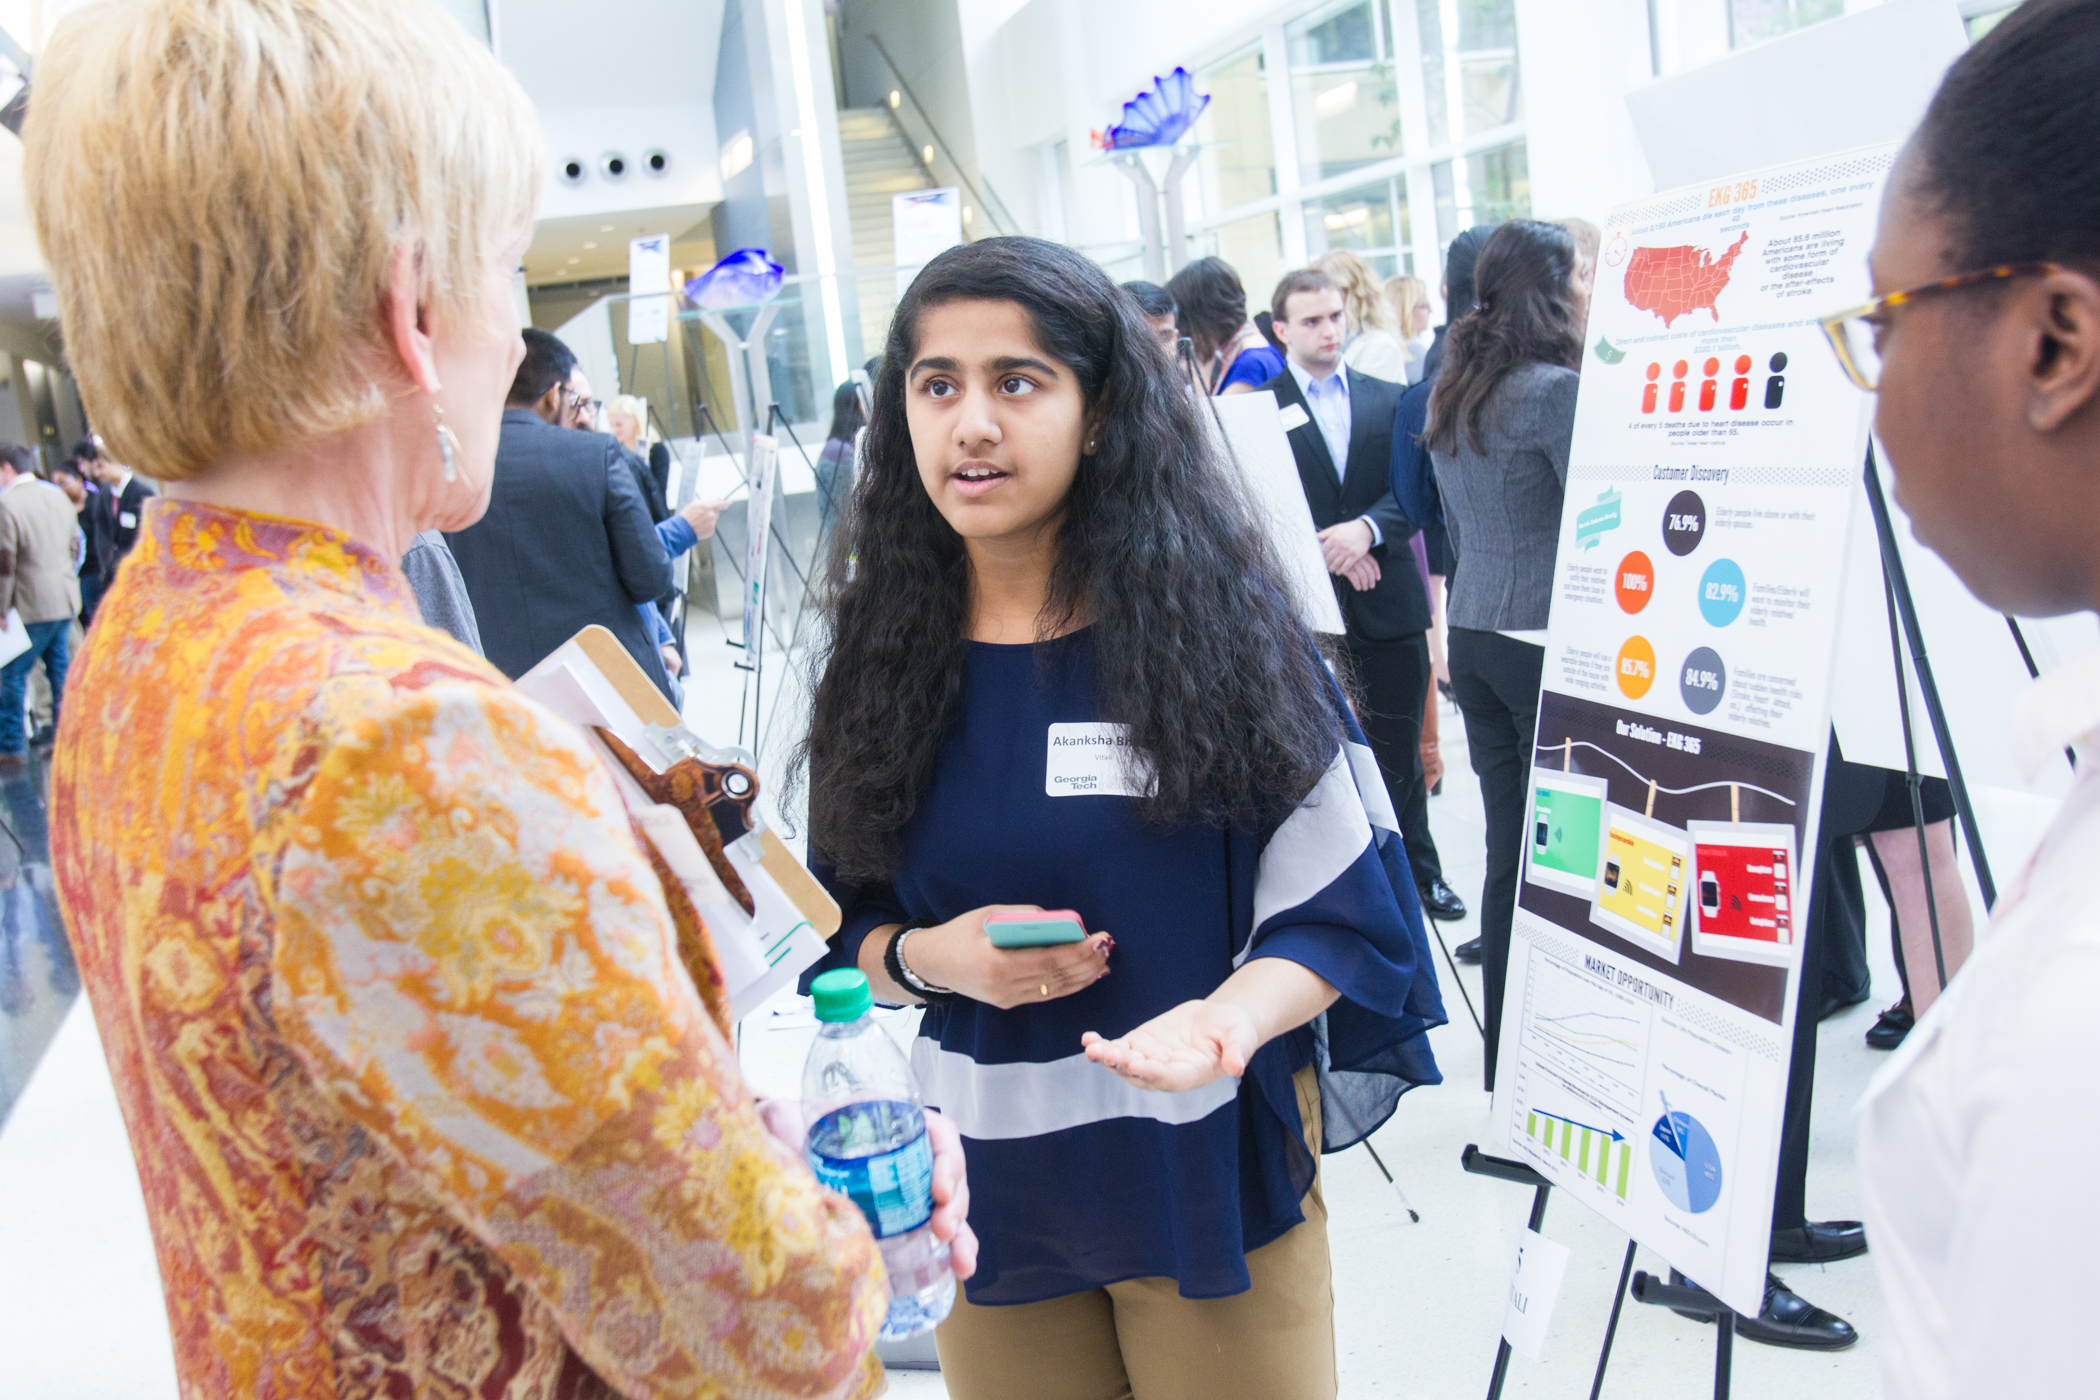 Students present business solutions at the poster showcase